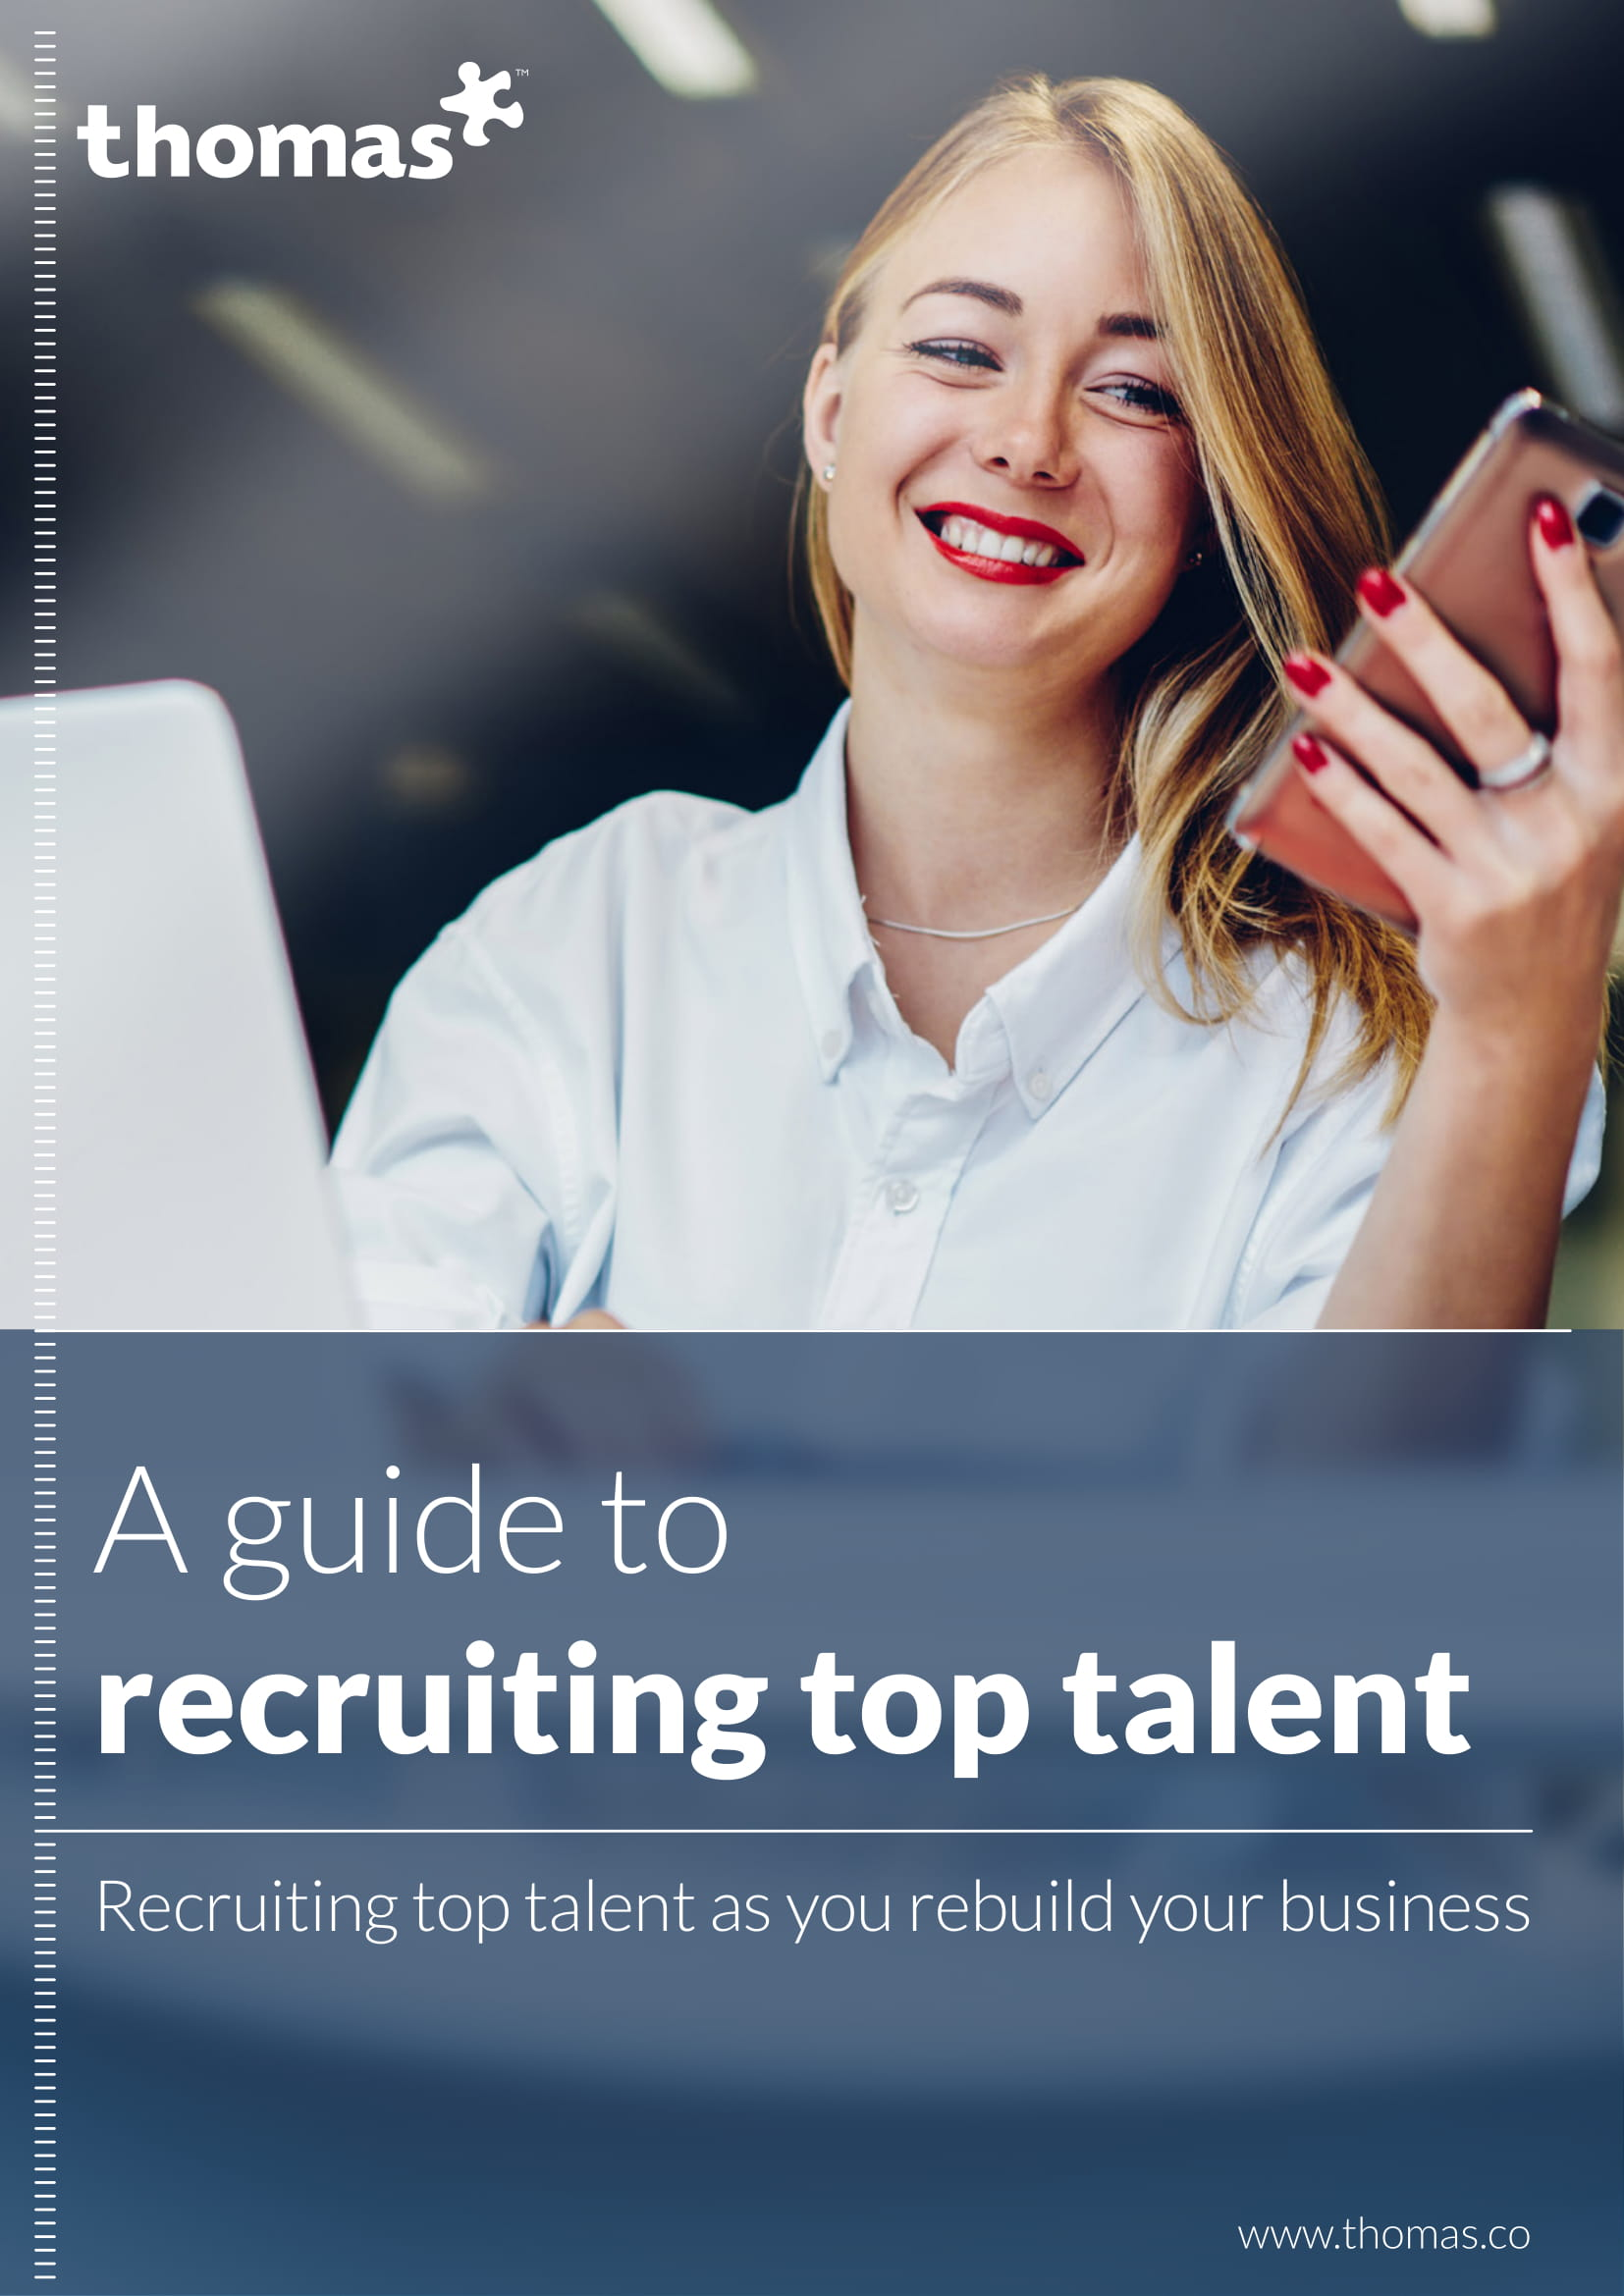 Guide to recruiting top talent